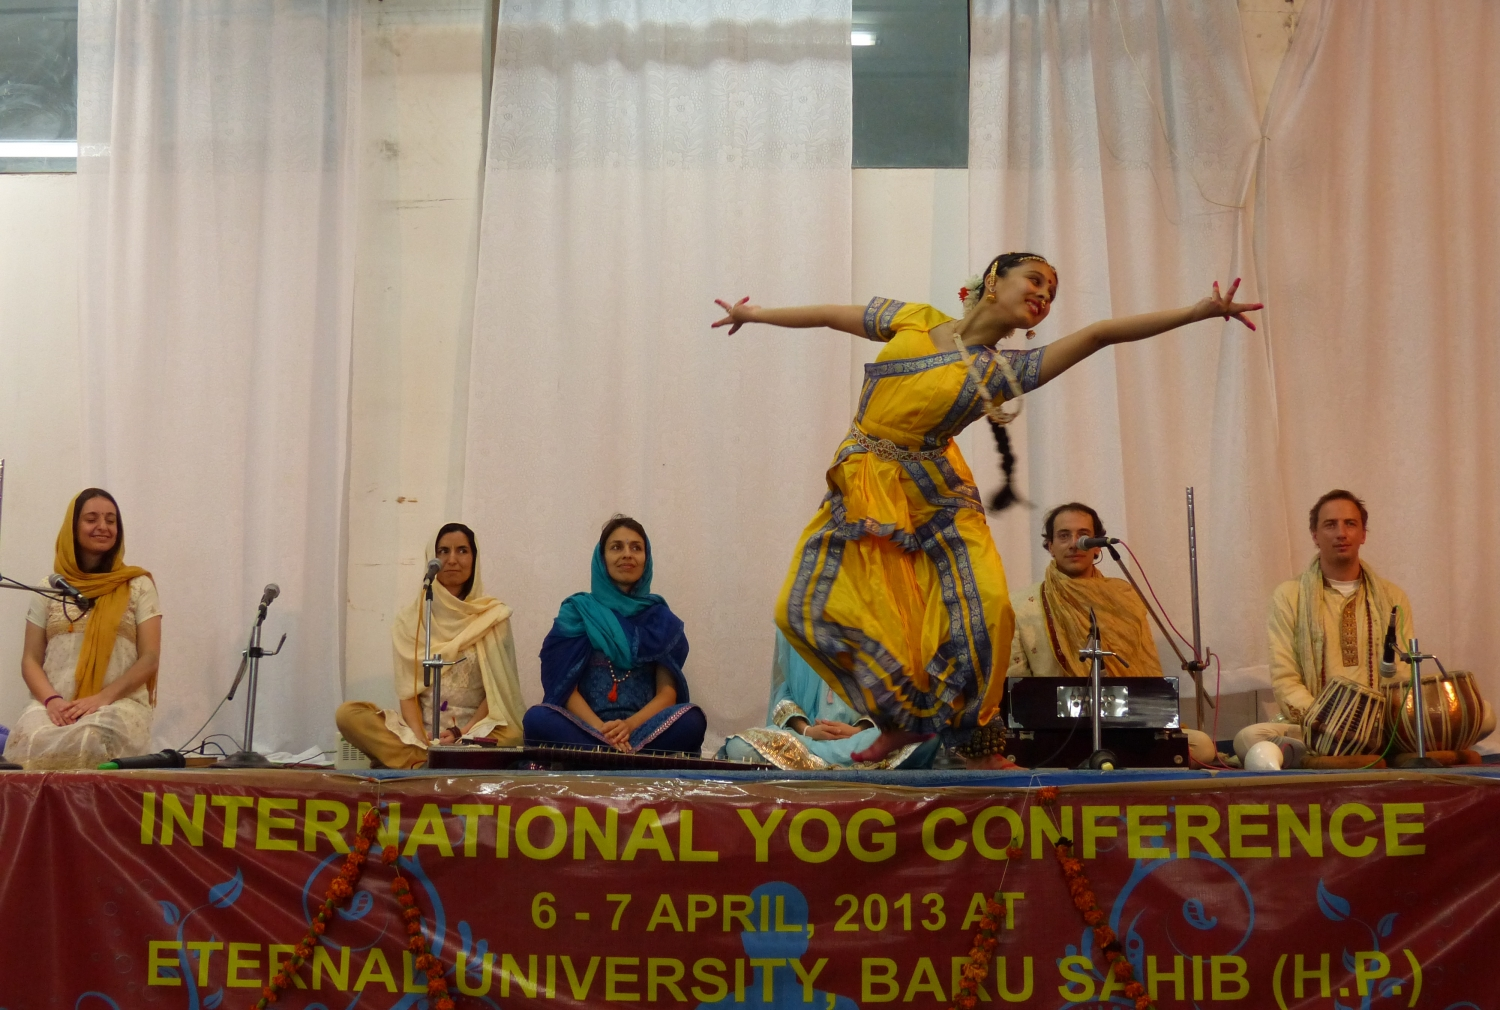 Présentation de Bhāratanathyam par le Shiva Rája - International Yoga Conference - Índia, Bahu Sahib, Eternal University, 2013